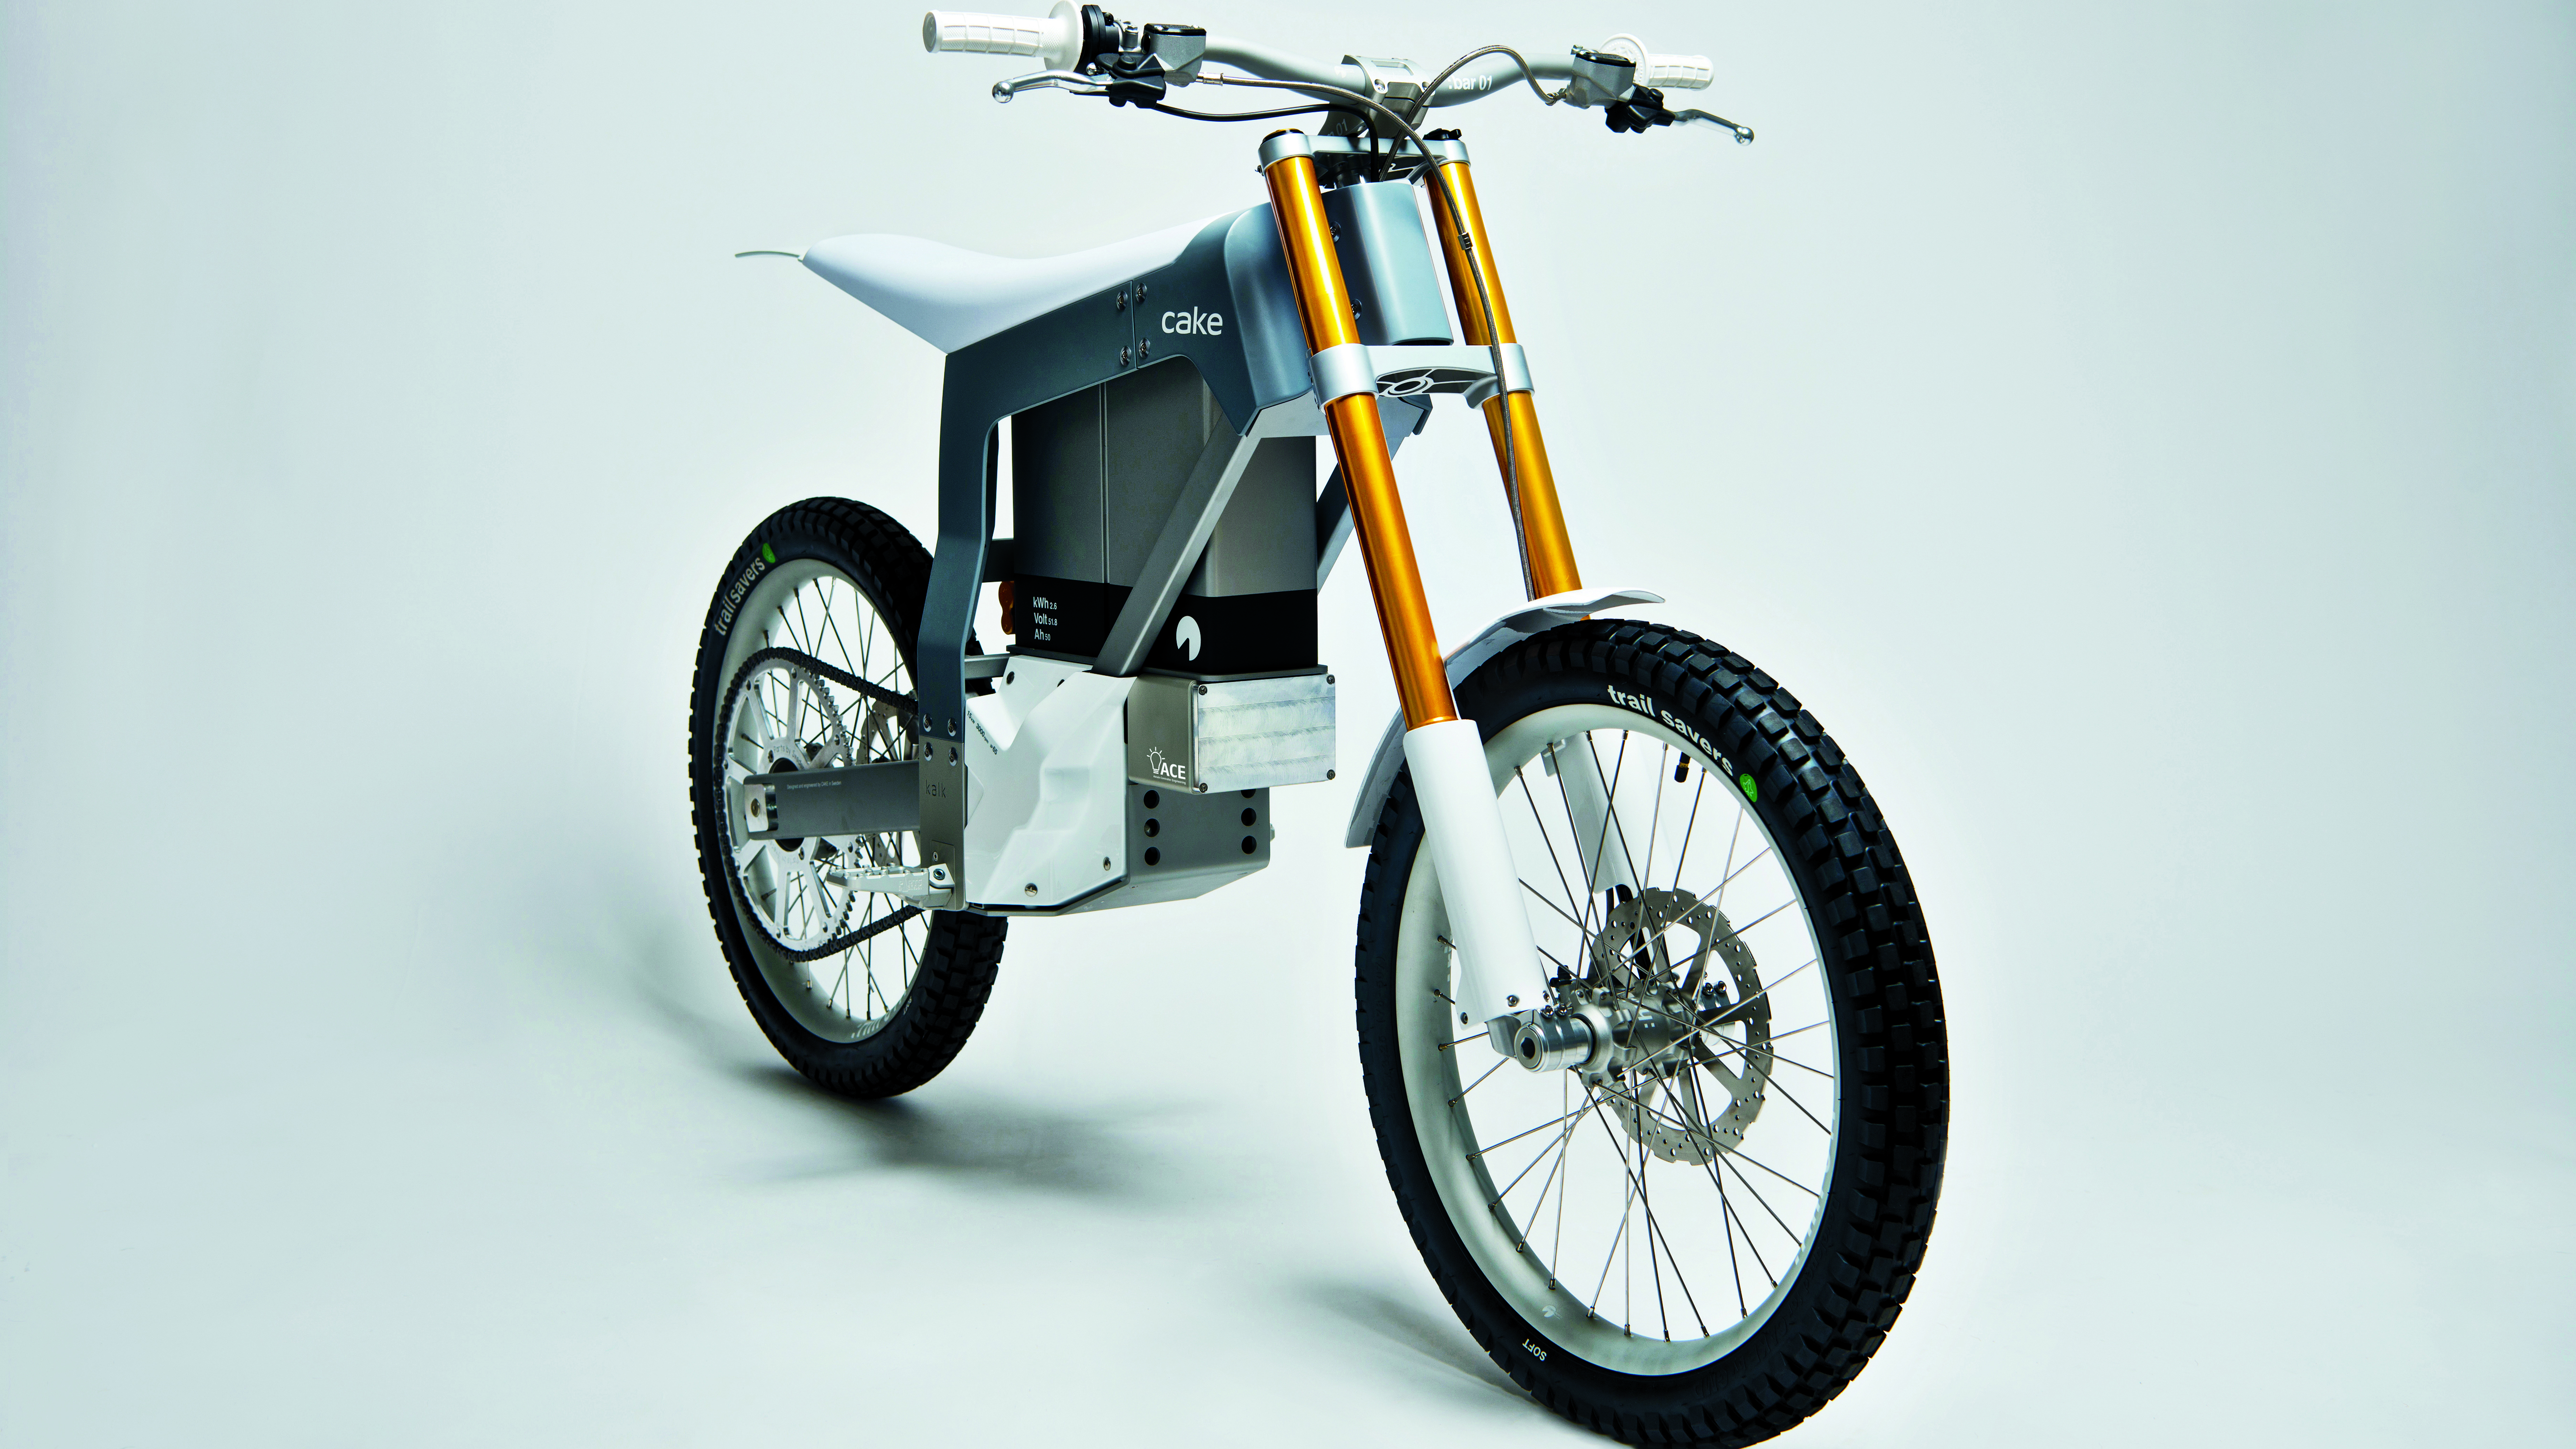 Cake S 14 000 Electric Dirt Bike Is The Coolest Thing On Two Wheels